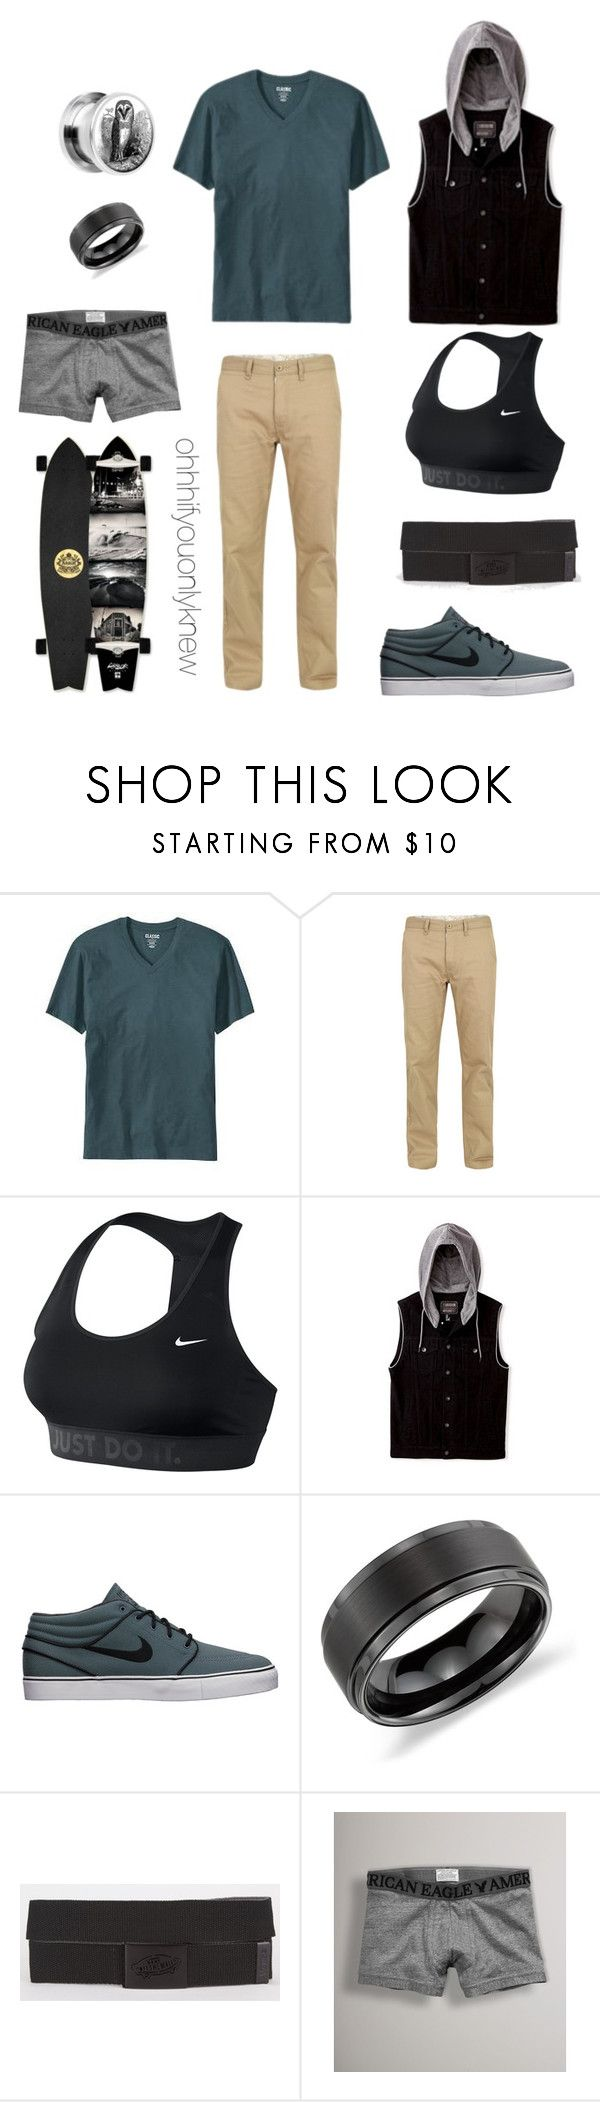 """Untitled #197"" by ohhhifyouonlyknew ❤ liked on Polyvore featuring Old Navy, Billionaire Boys Club, NIKE, 21 Men, Blue Nile, Vans, American Eagle Outfitters, tomboy, lgbt and dyke"